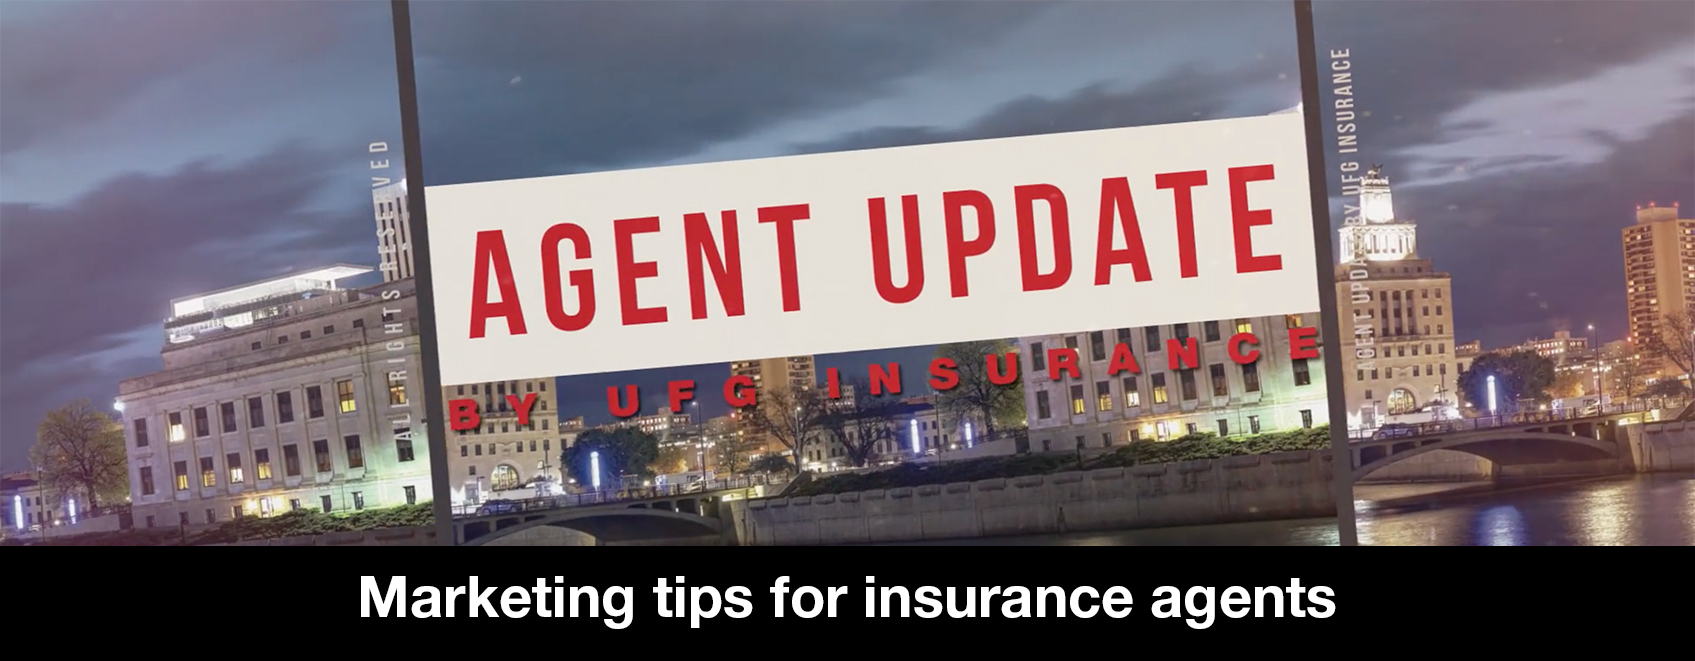 Agent update image with title of video, Marketing tips for insurance agents.